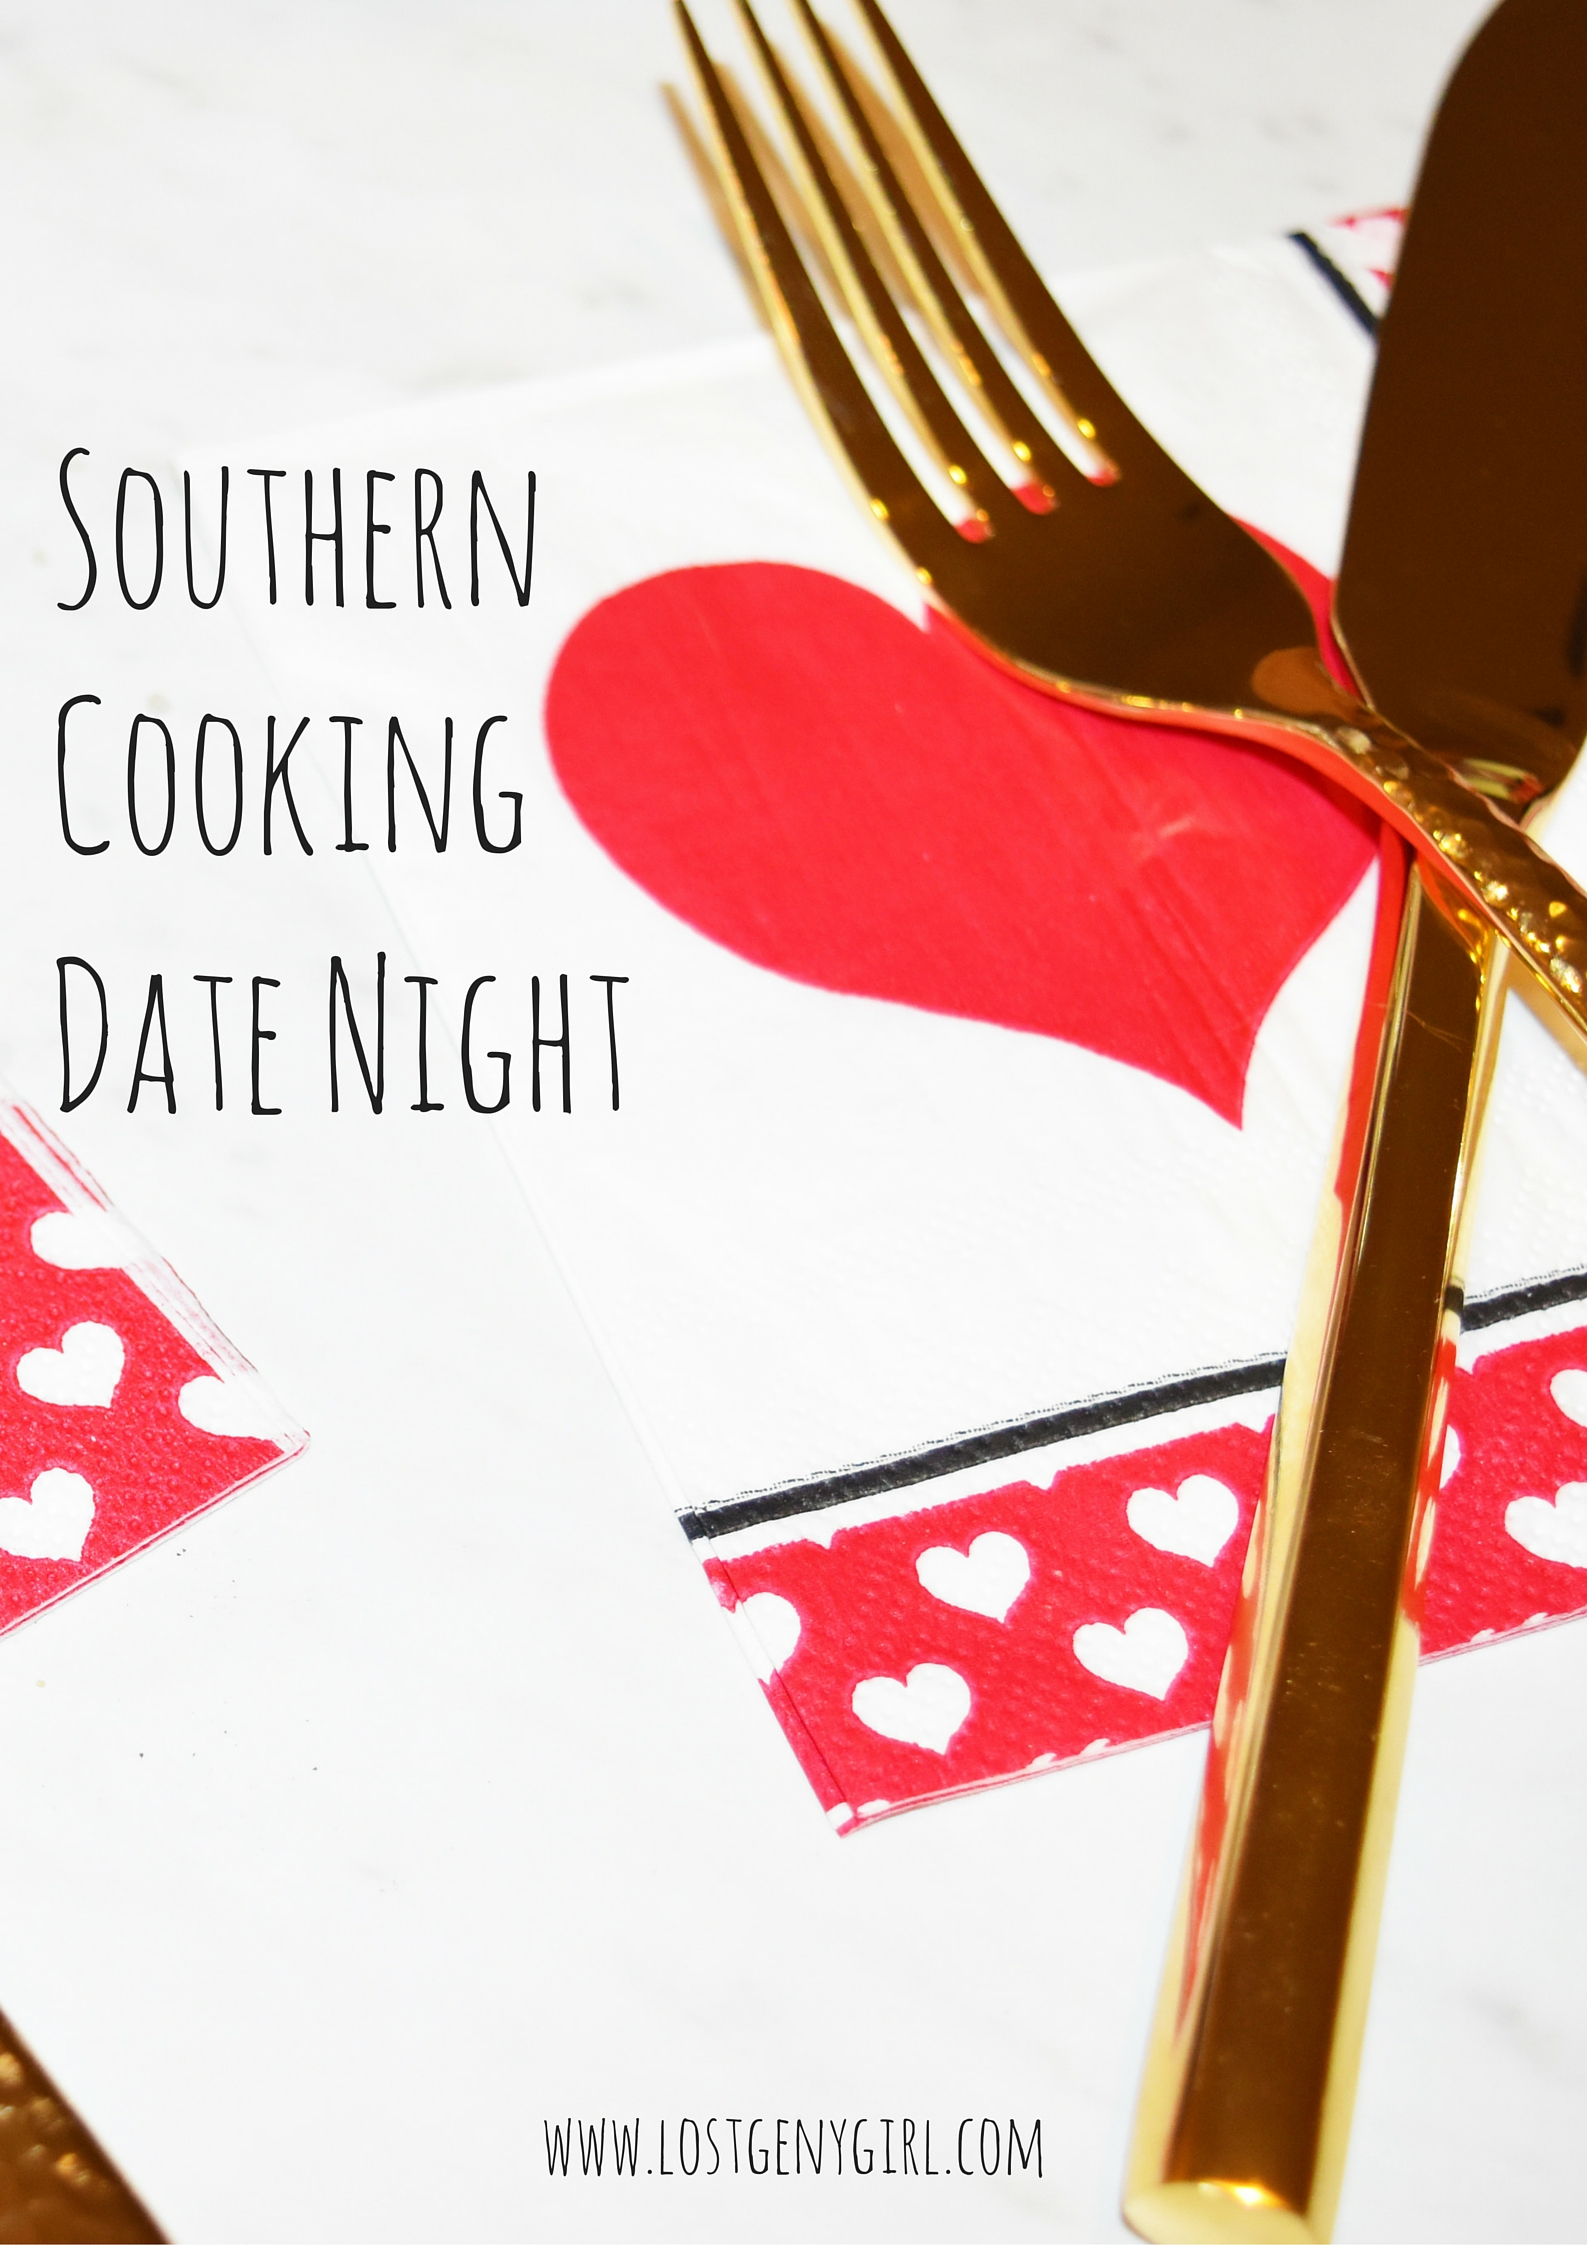 Southern Cooking Date Night